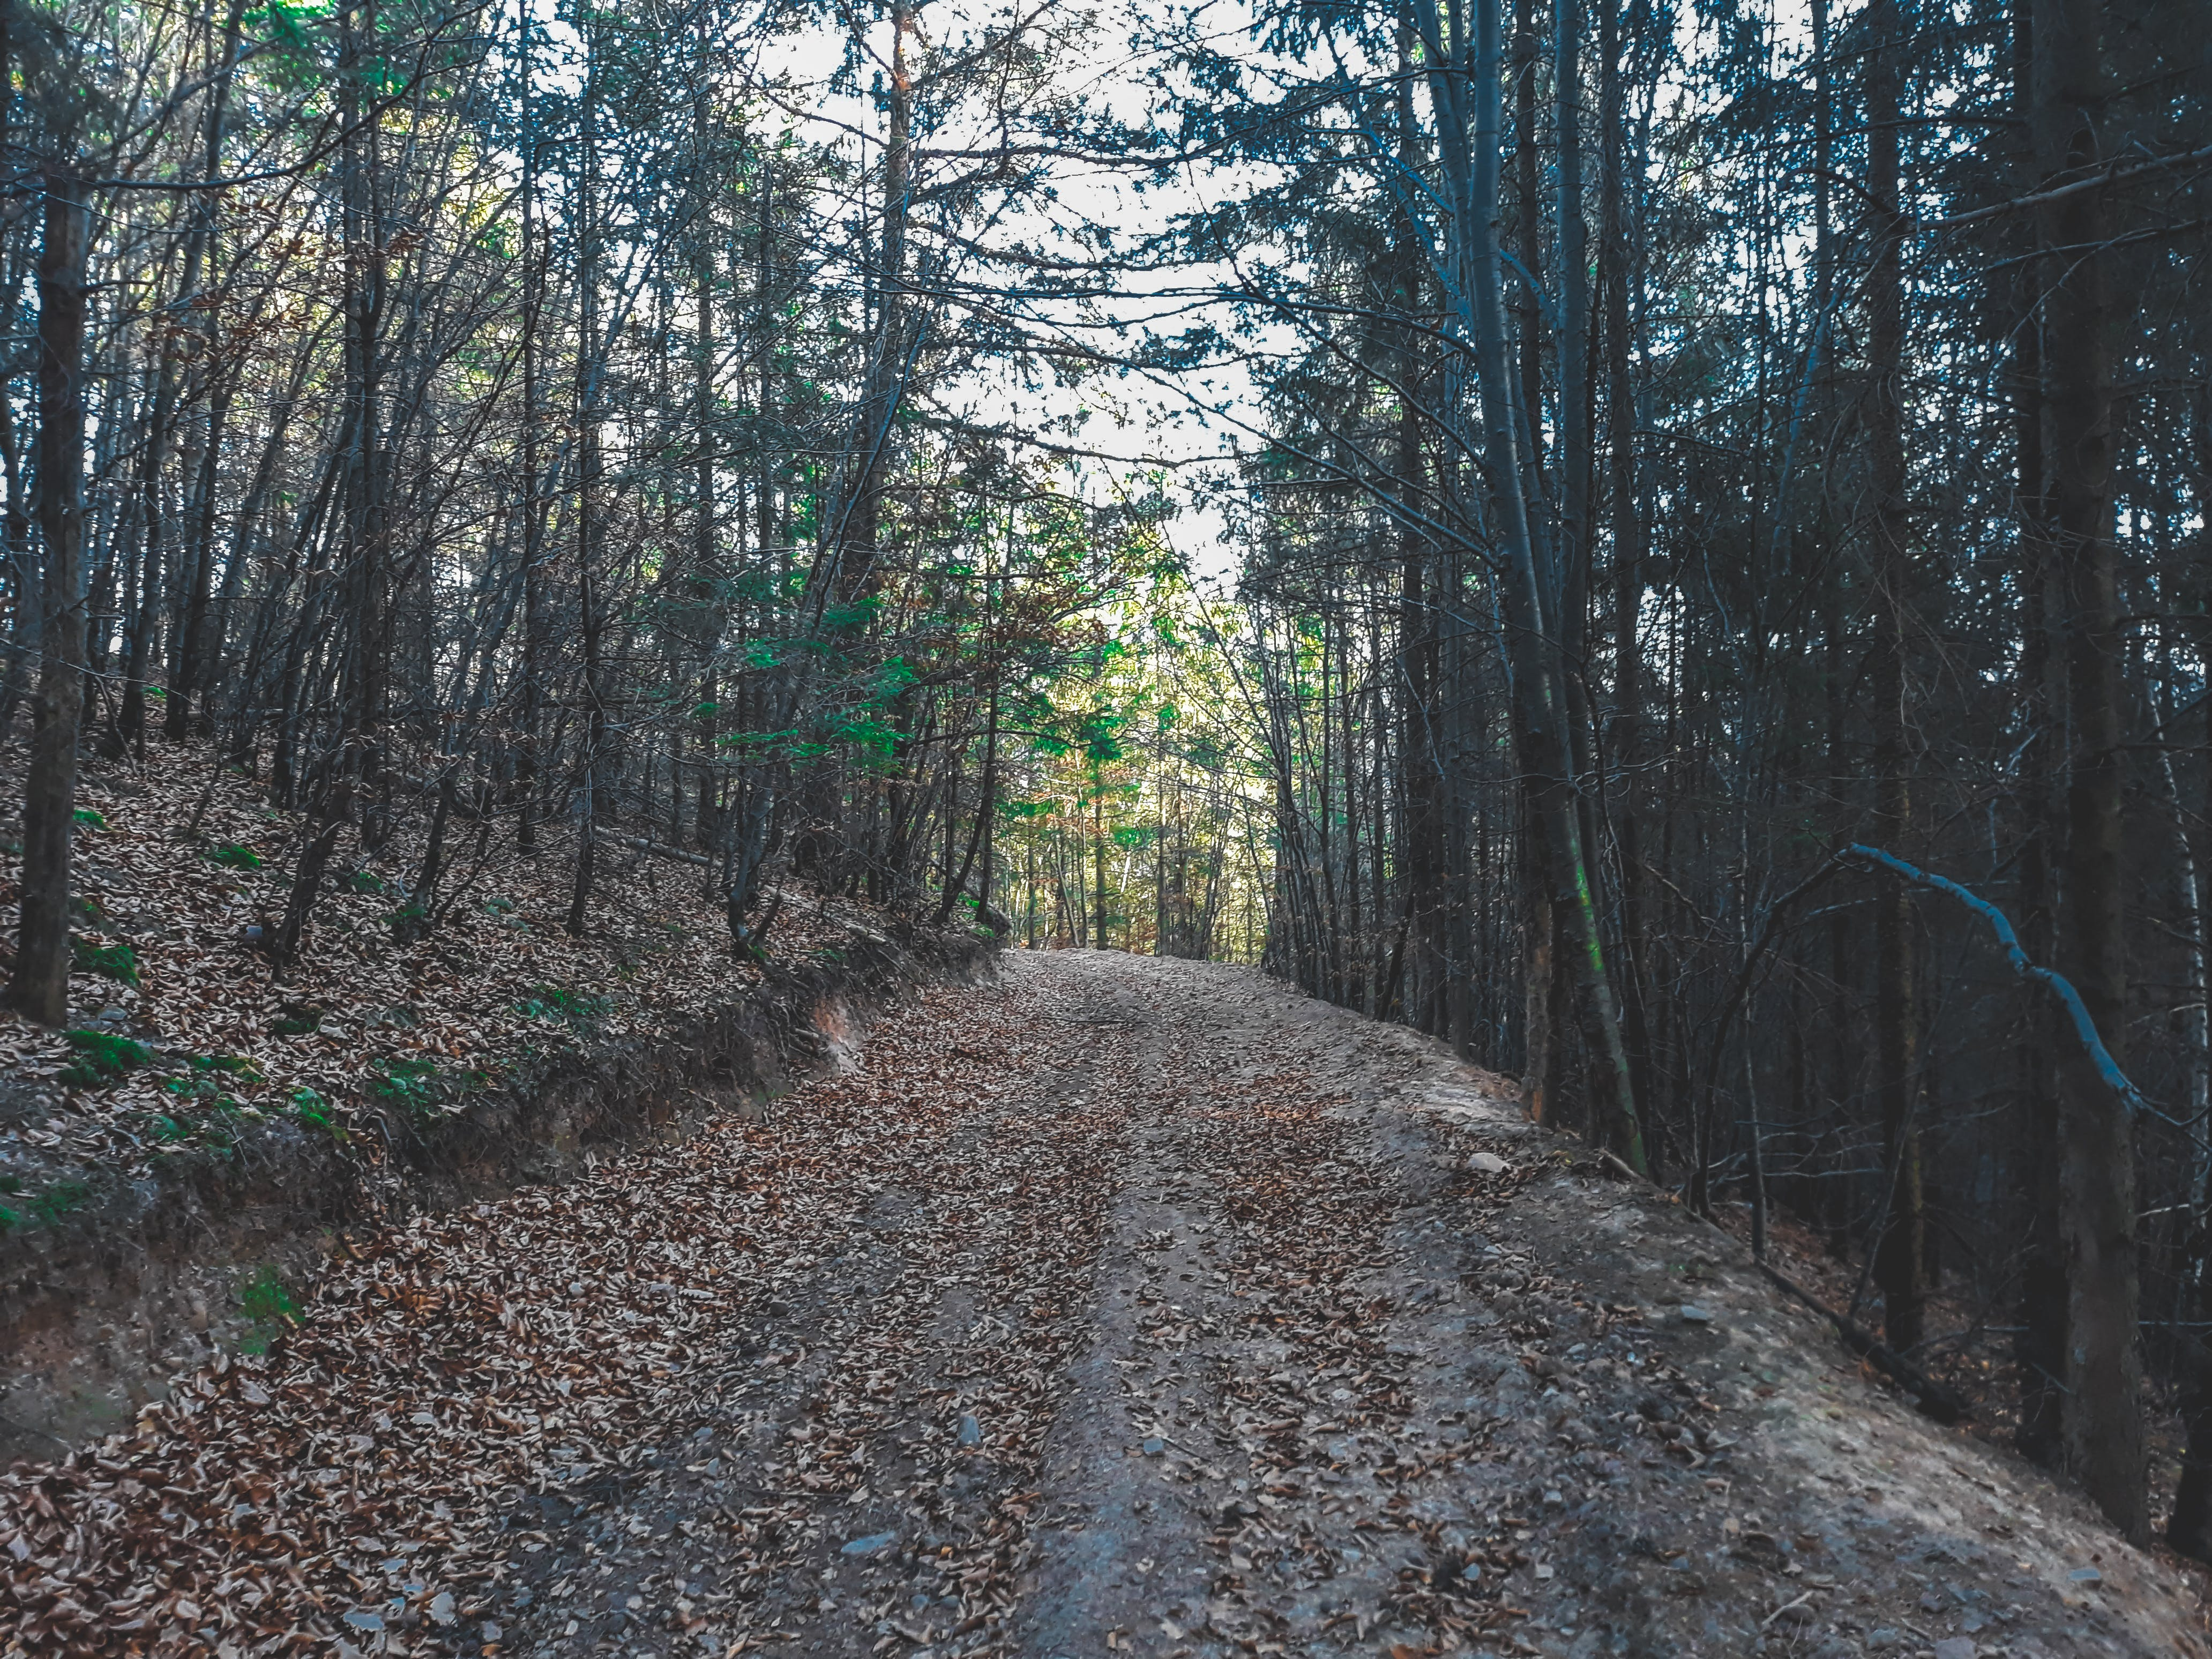 Free stock photo of forest, forest path, trees